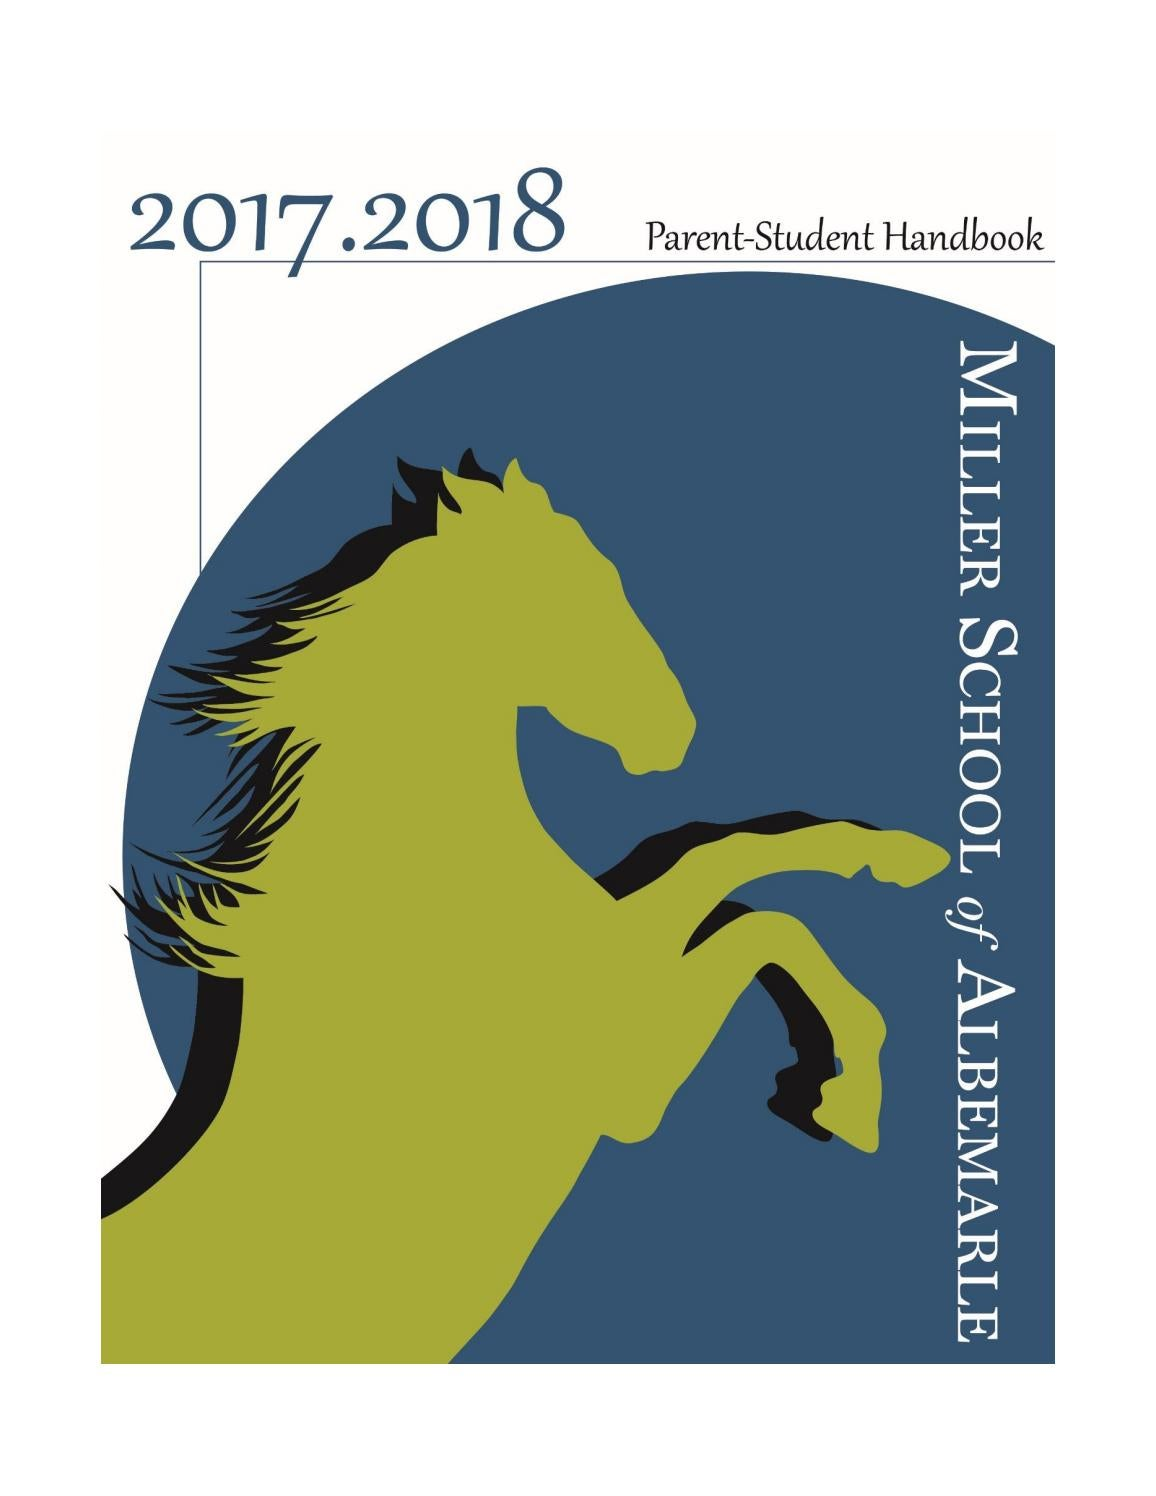 MSA Parent-Student Handbook 2017/2018 by Miller School of Albemarle - issuu